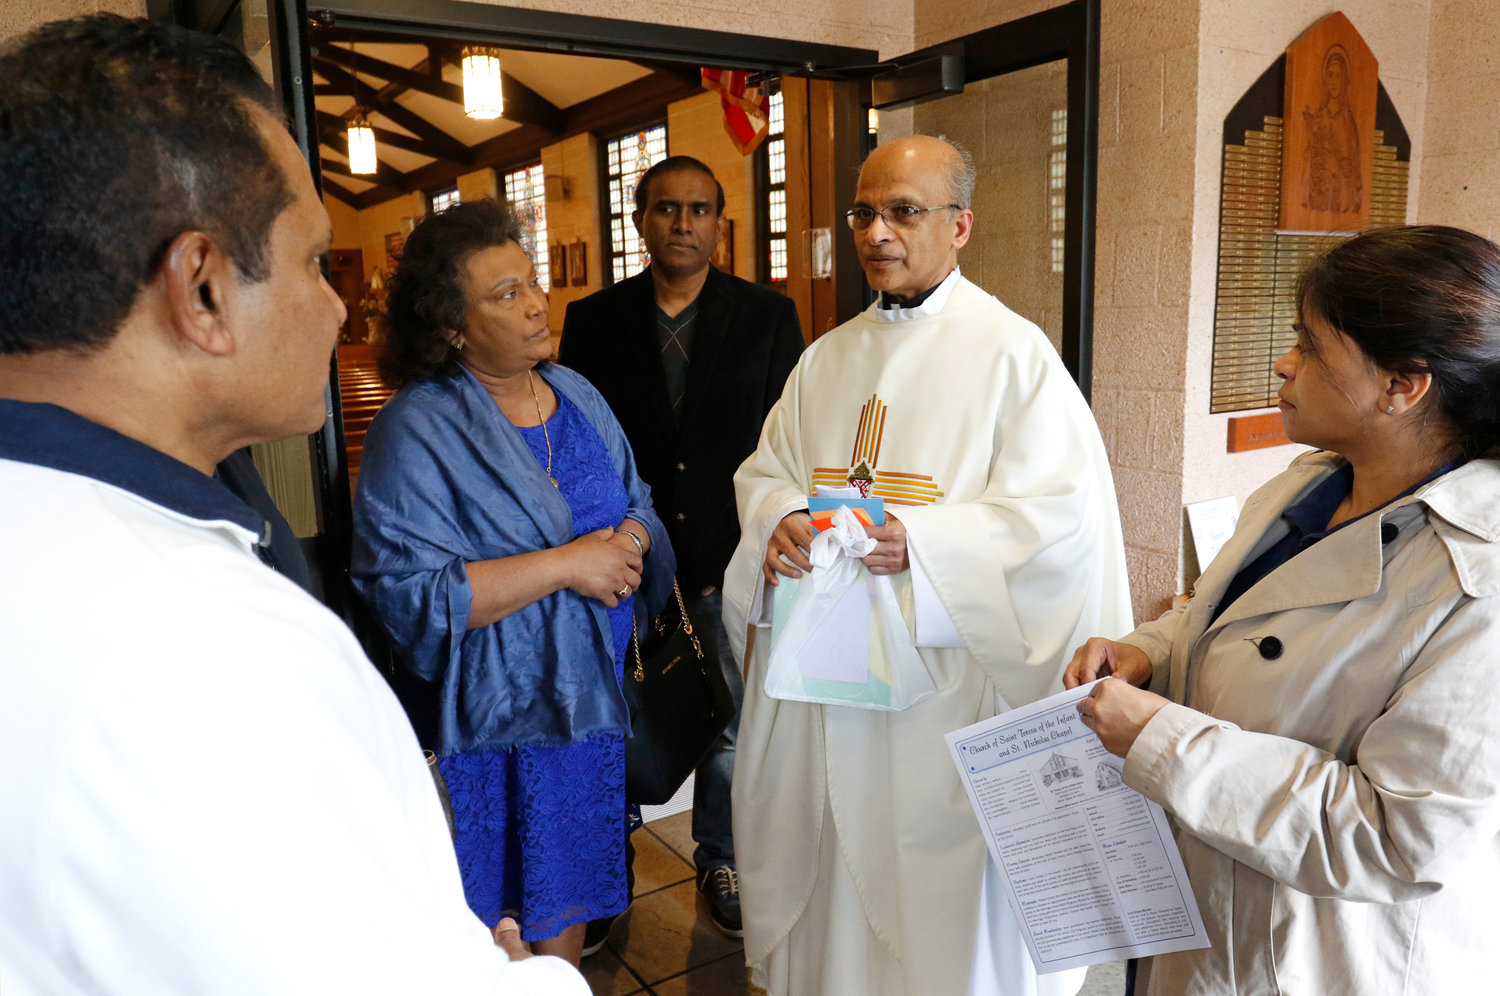 Vincentian Father John Kallattil, parochial vicar, chats with local Sri Lankan Catholics following Mass on April 28 at St. Teresa of the Infant Jesus Church on Staten Island.